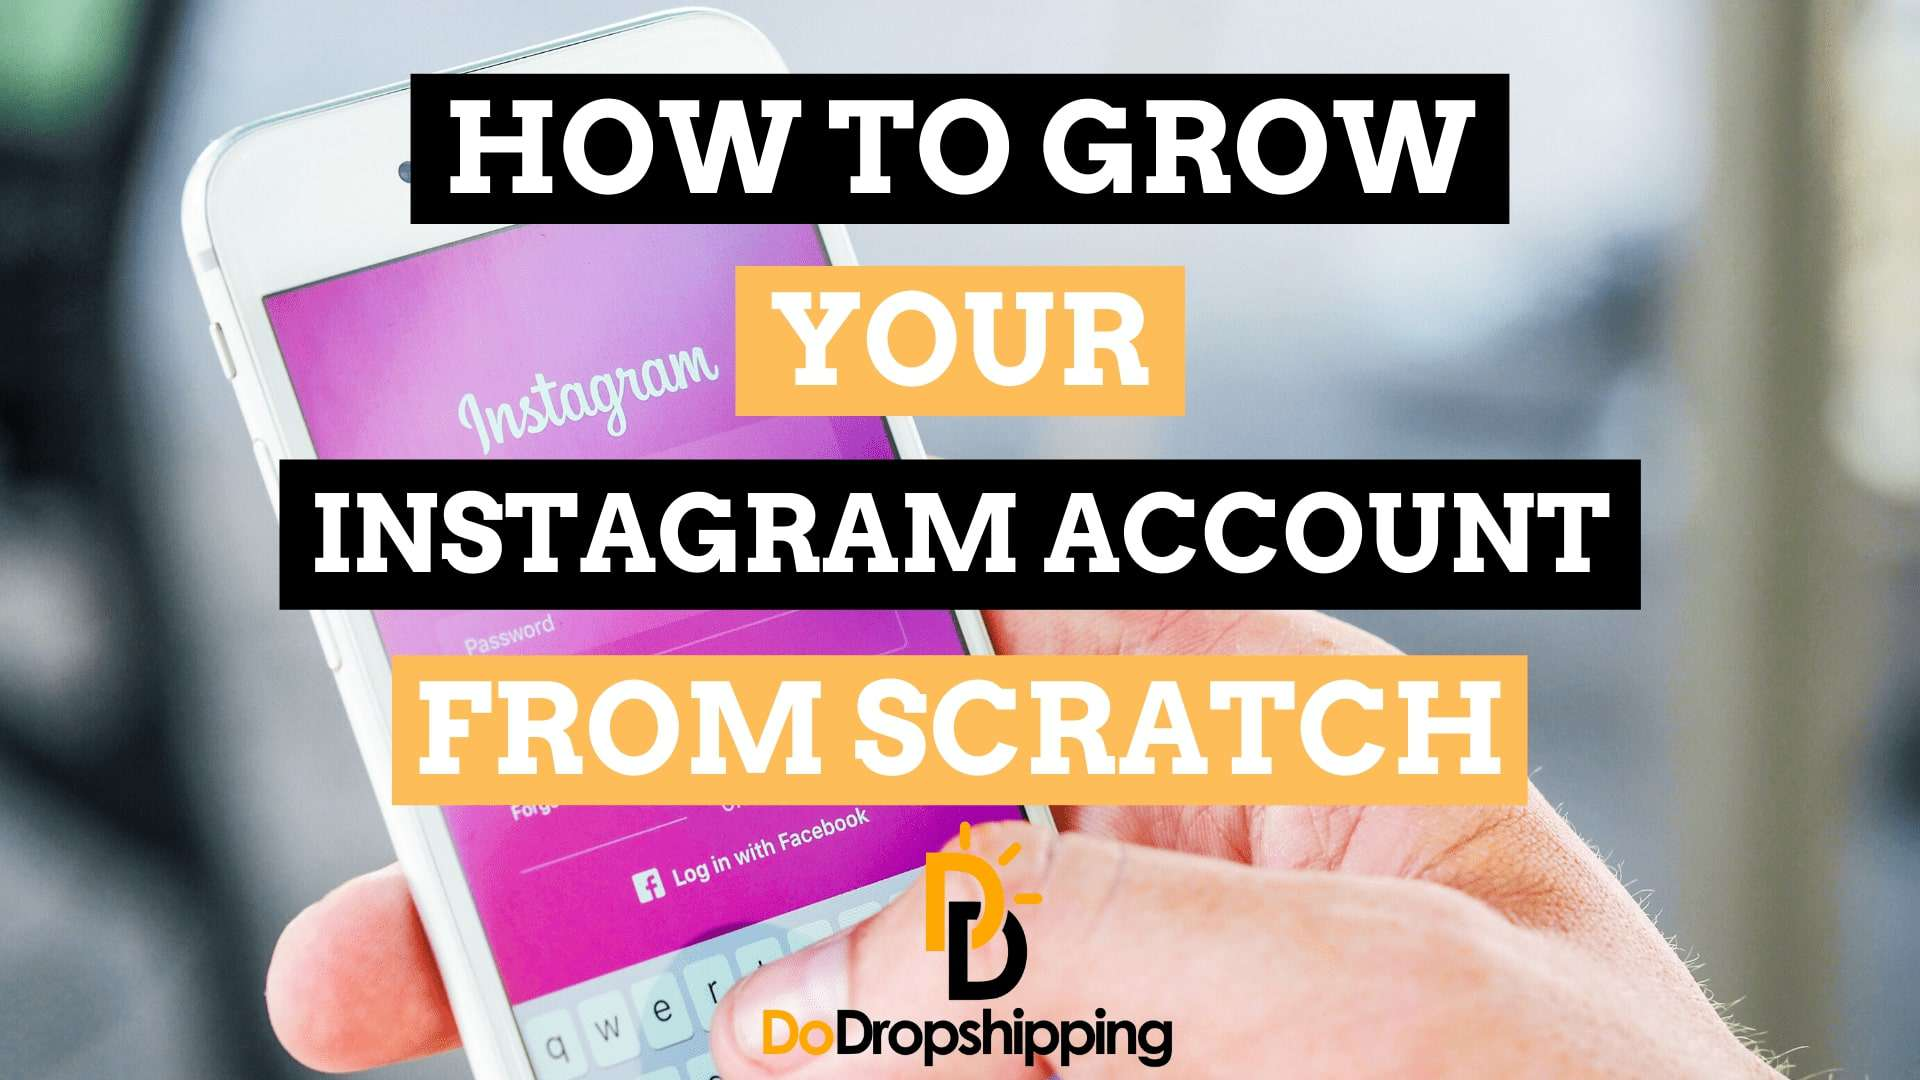 Dropshipping Instagram Account: Create & Grow Your Profile!